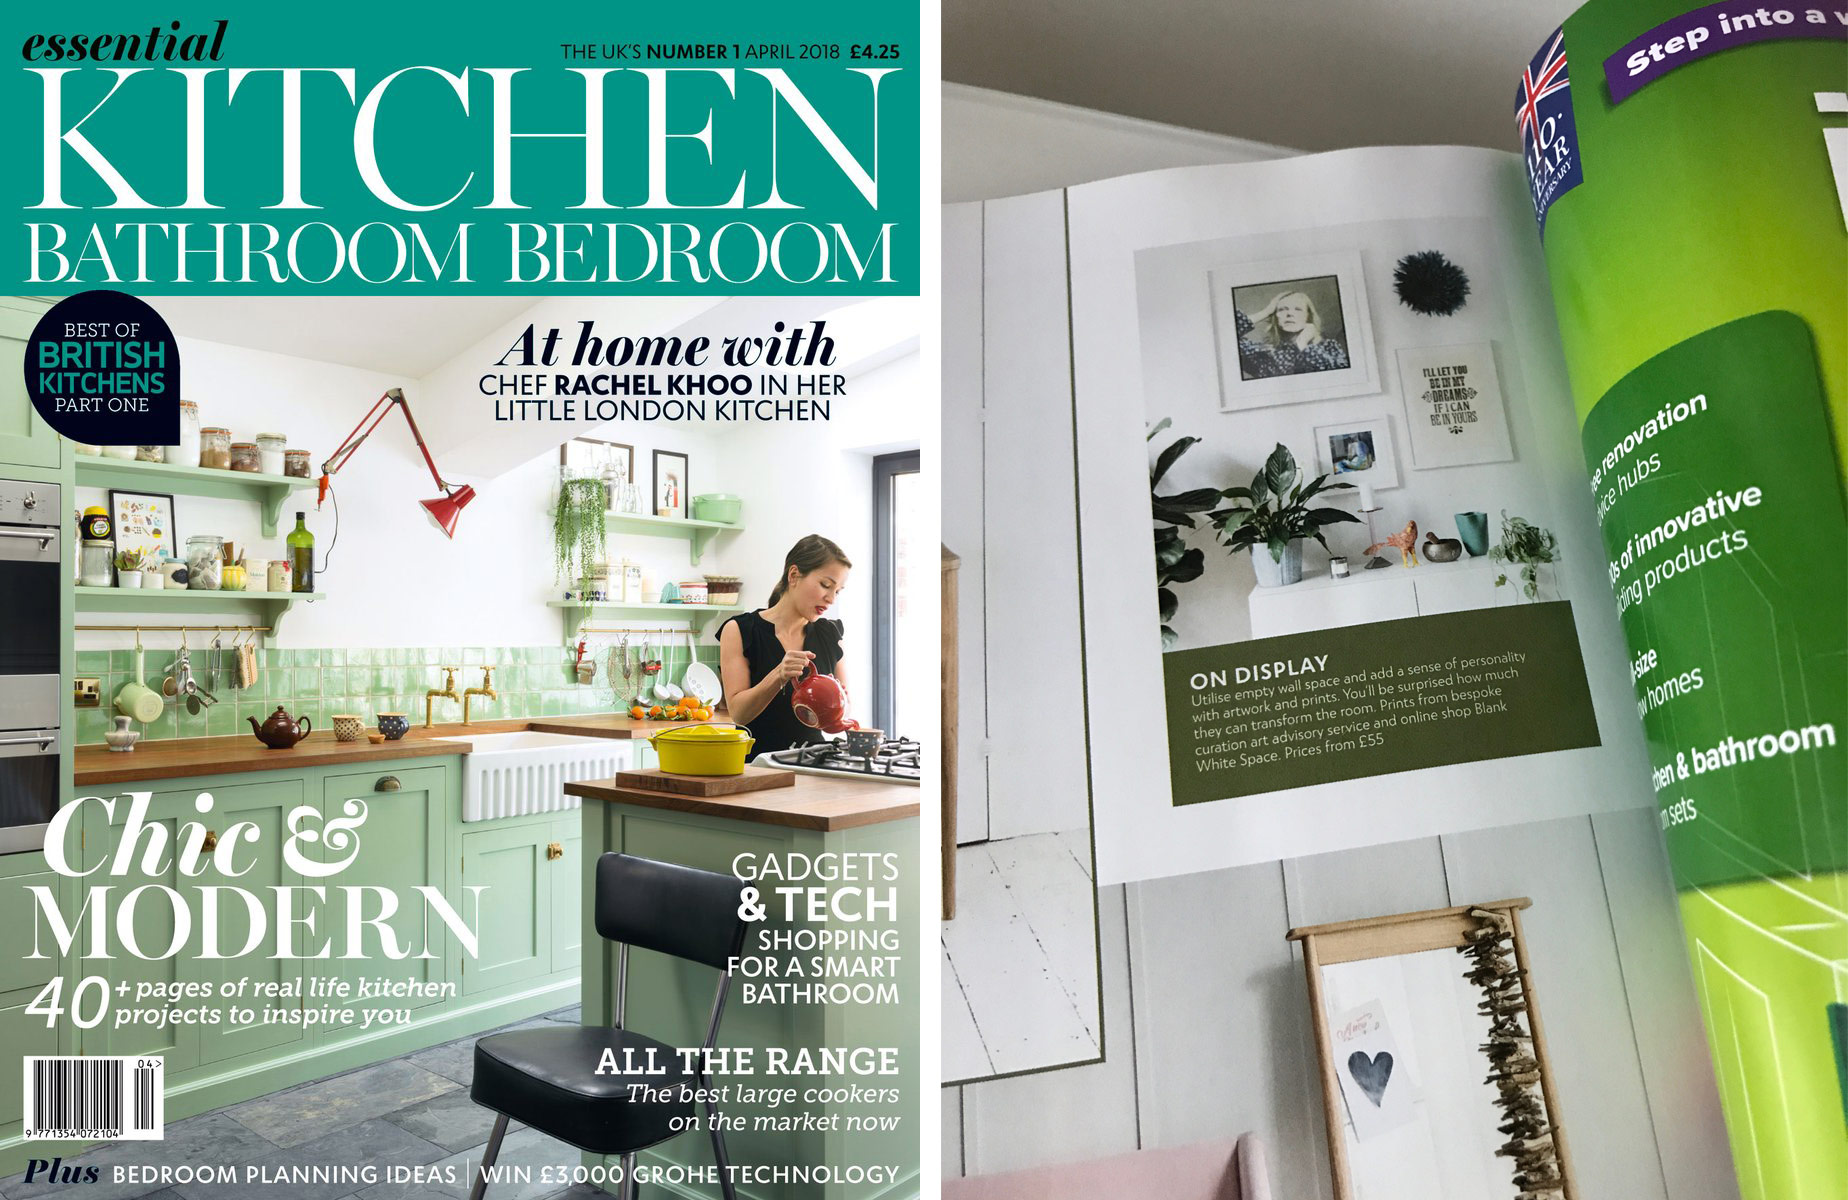 Essential Kitchen Bathroom Bedroom  – April 2018